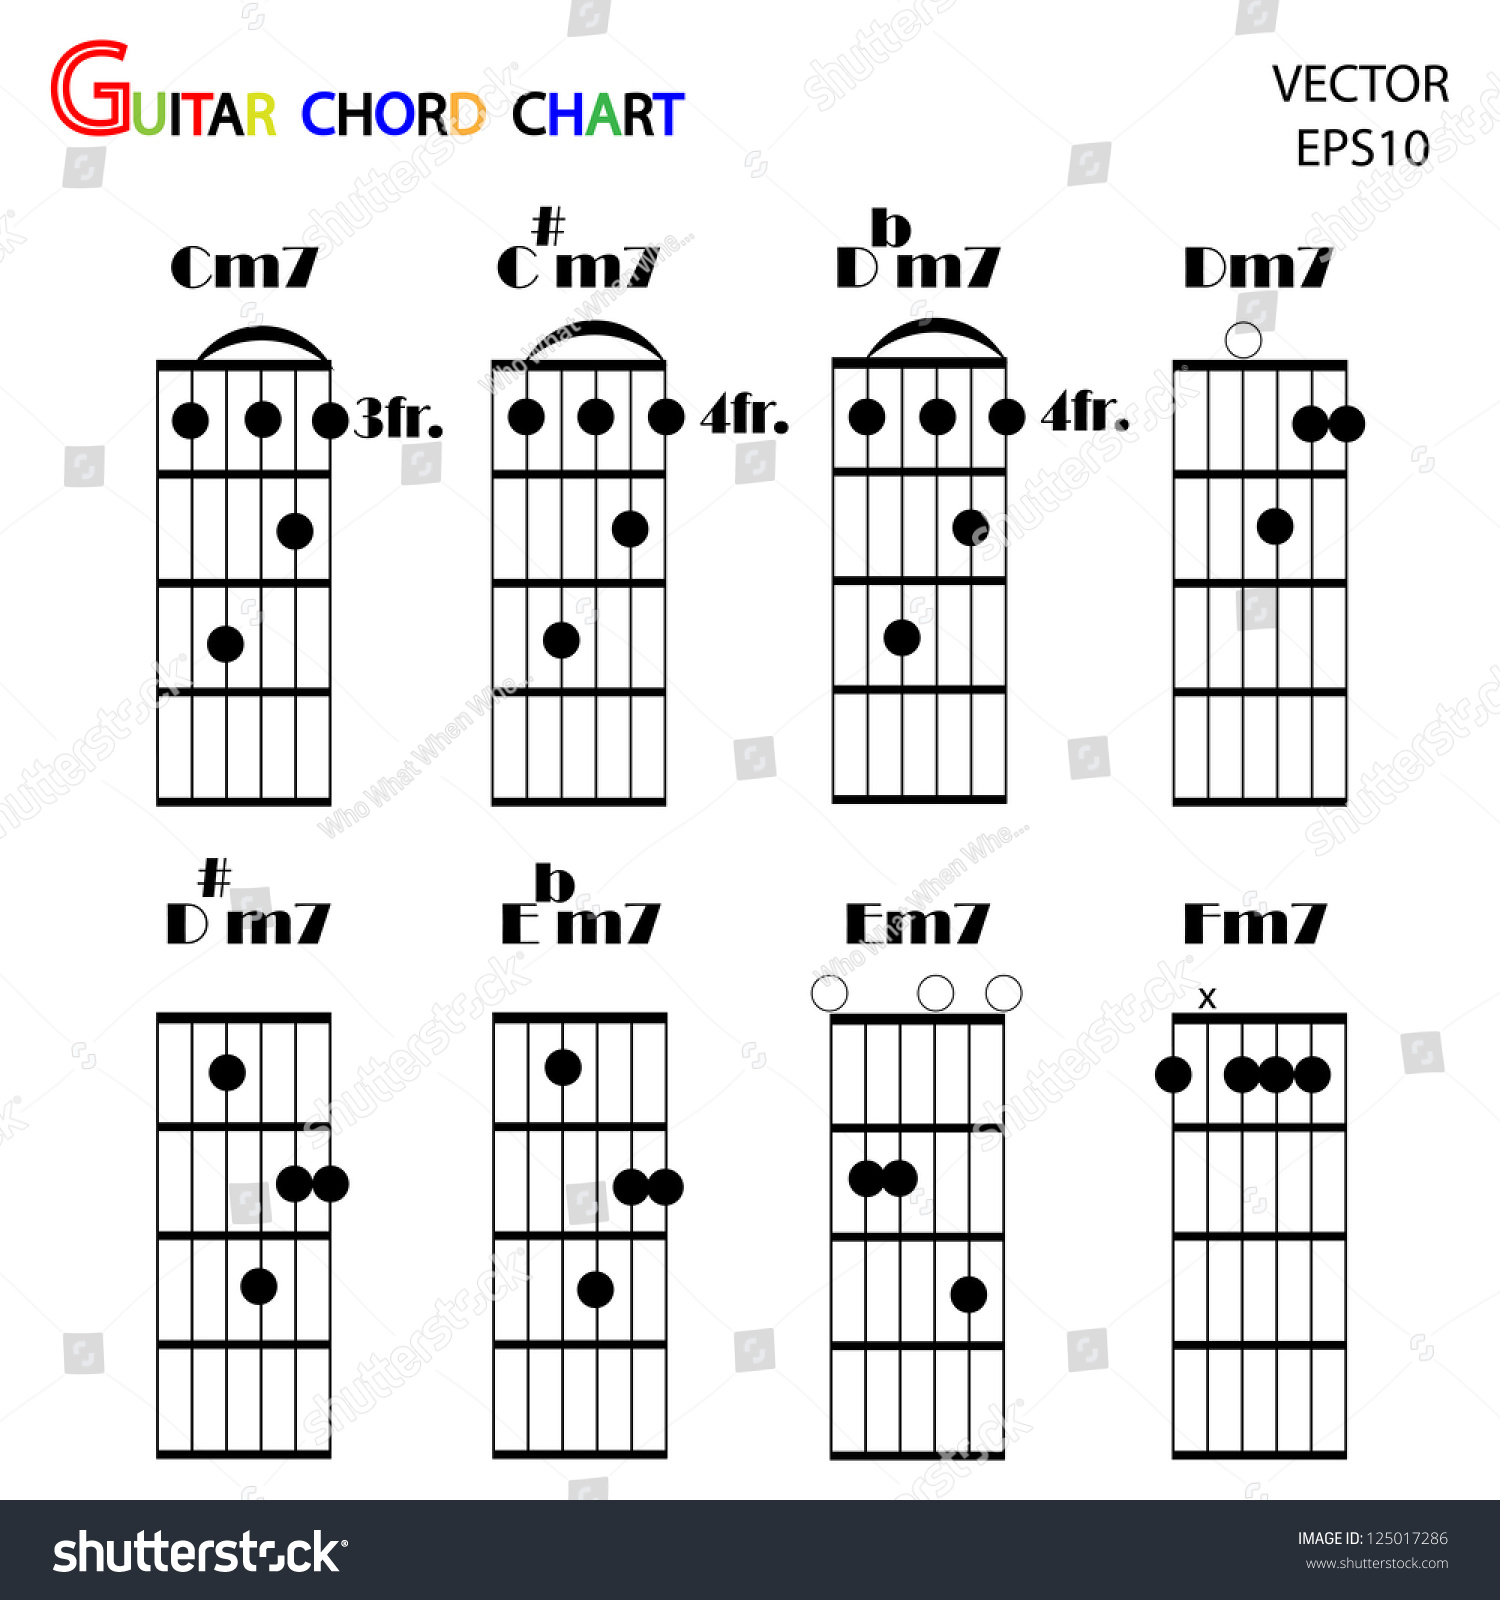 Guitar Chord Tabs Images Piano Chord Chart With Finger Positions